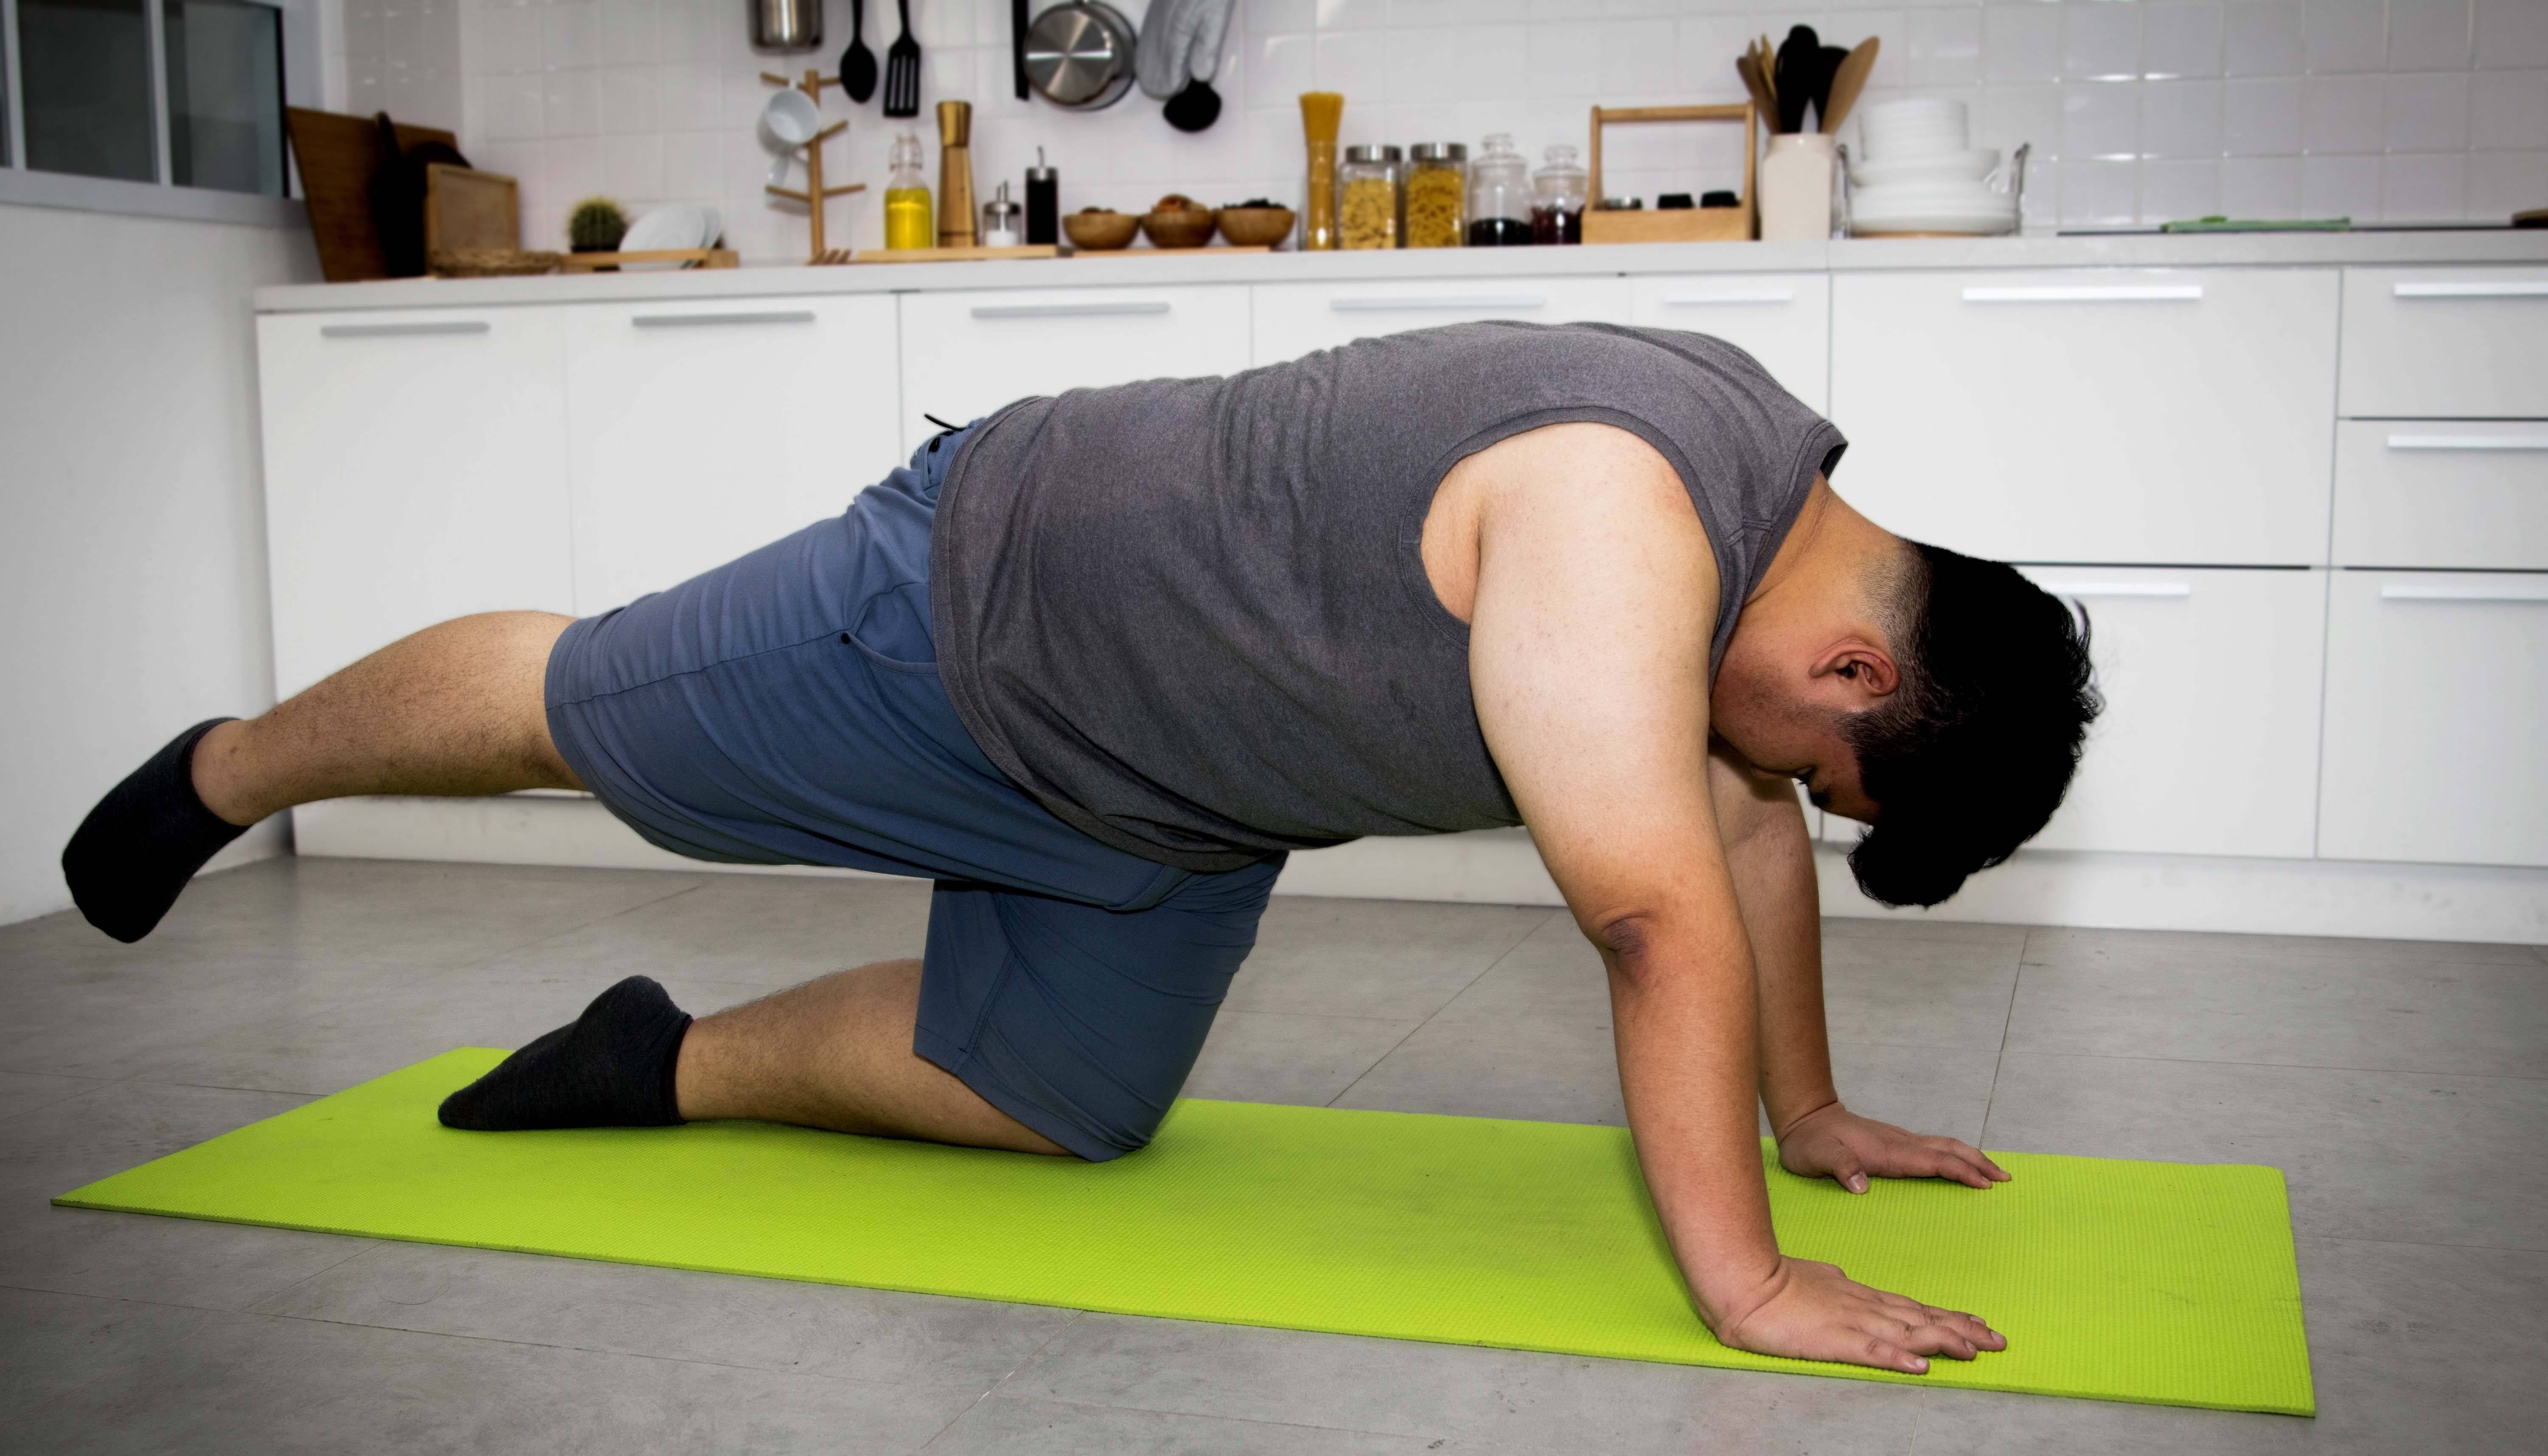 Man exercising in kitchen on a yoga mat